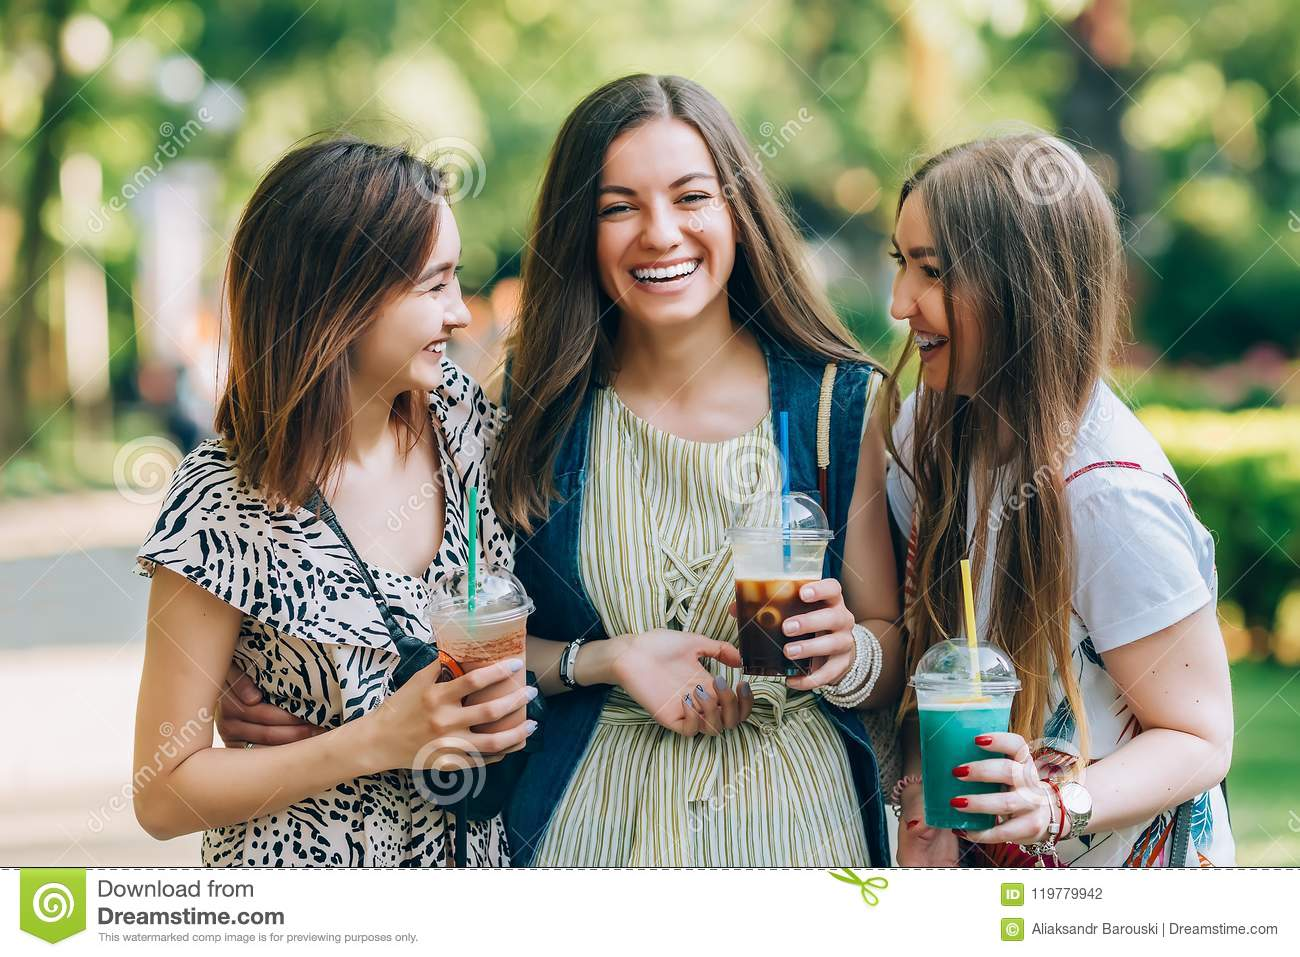 Summer lifestyle portrait multiracial women enjoy nice day, holding glasses of milkshakes. Happy friends in the park on